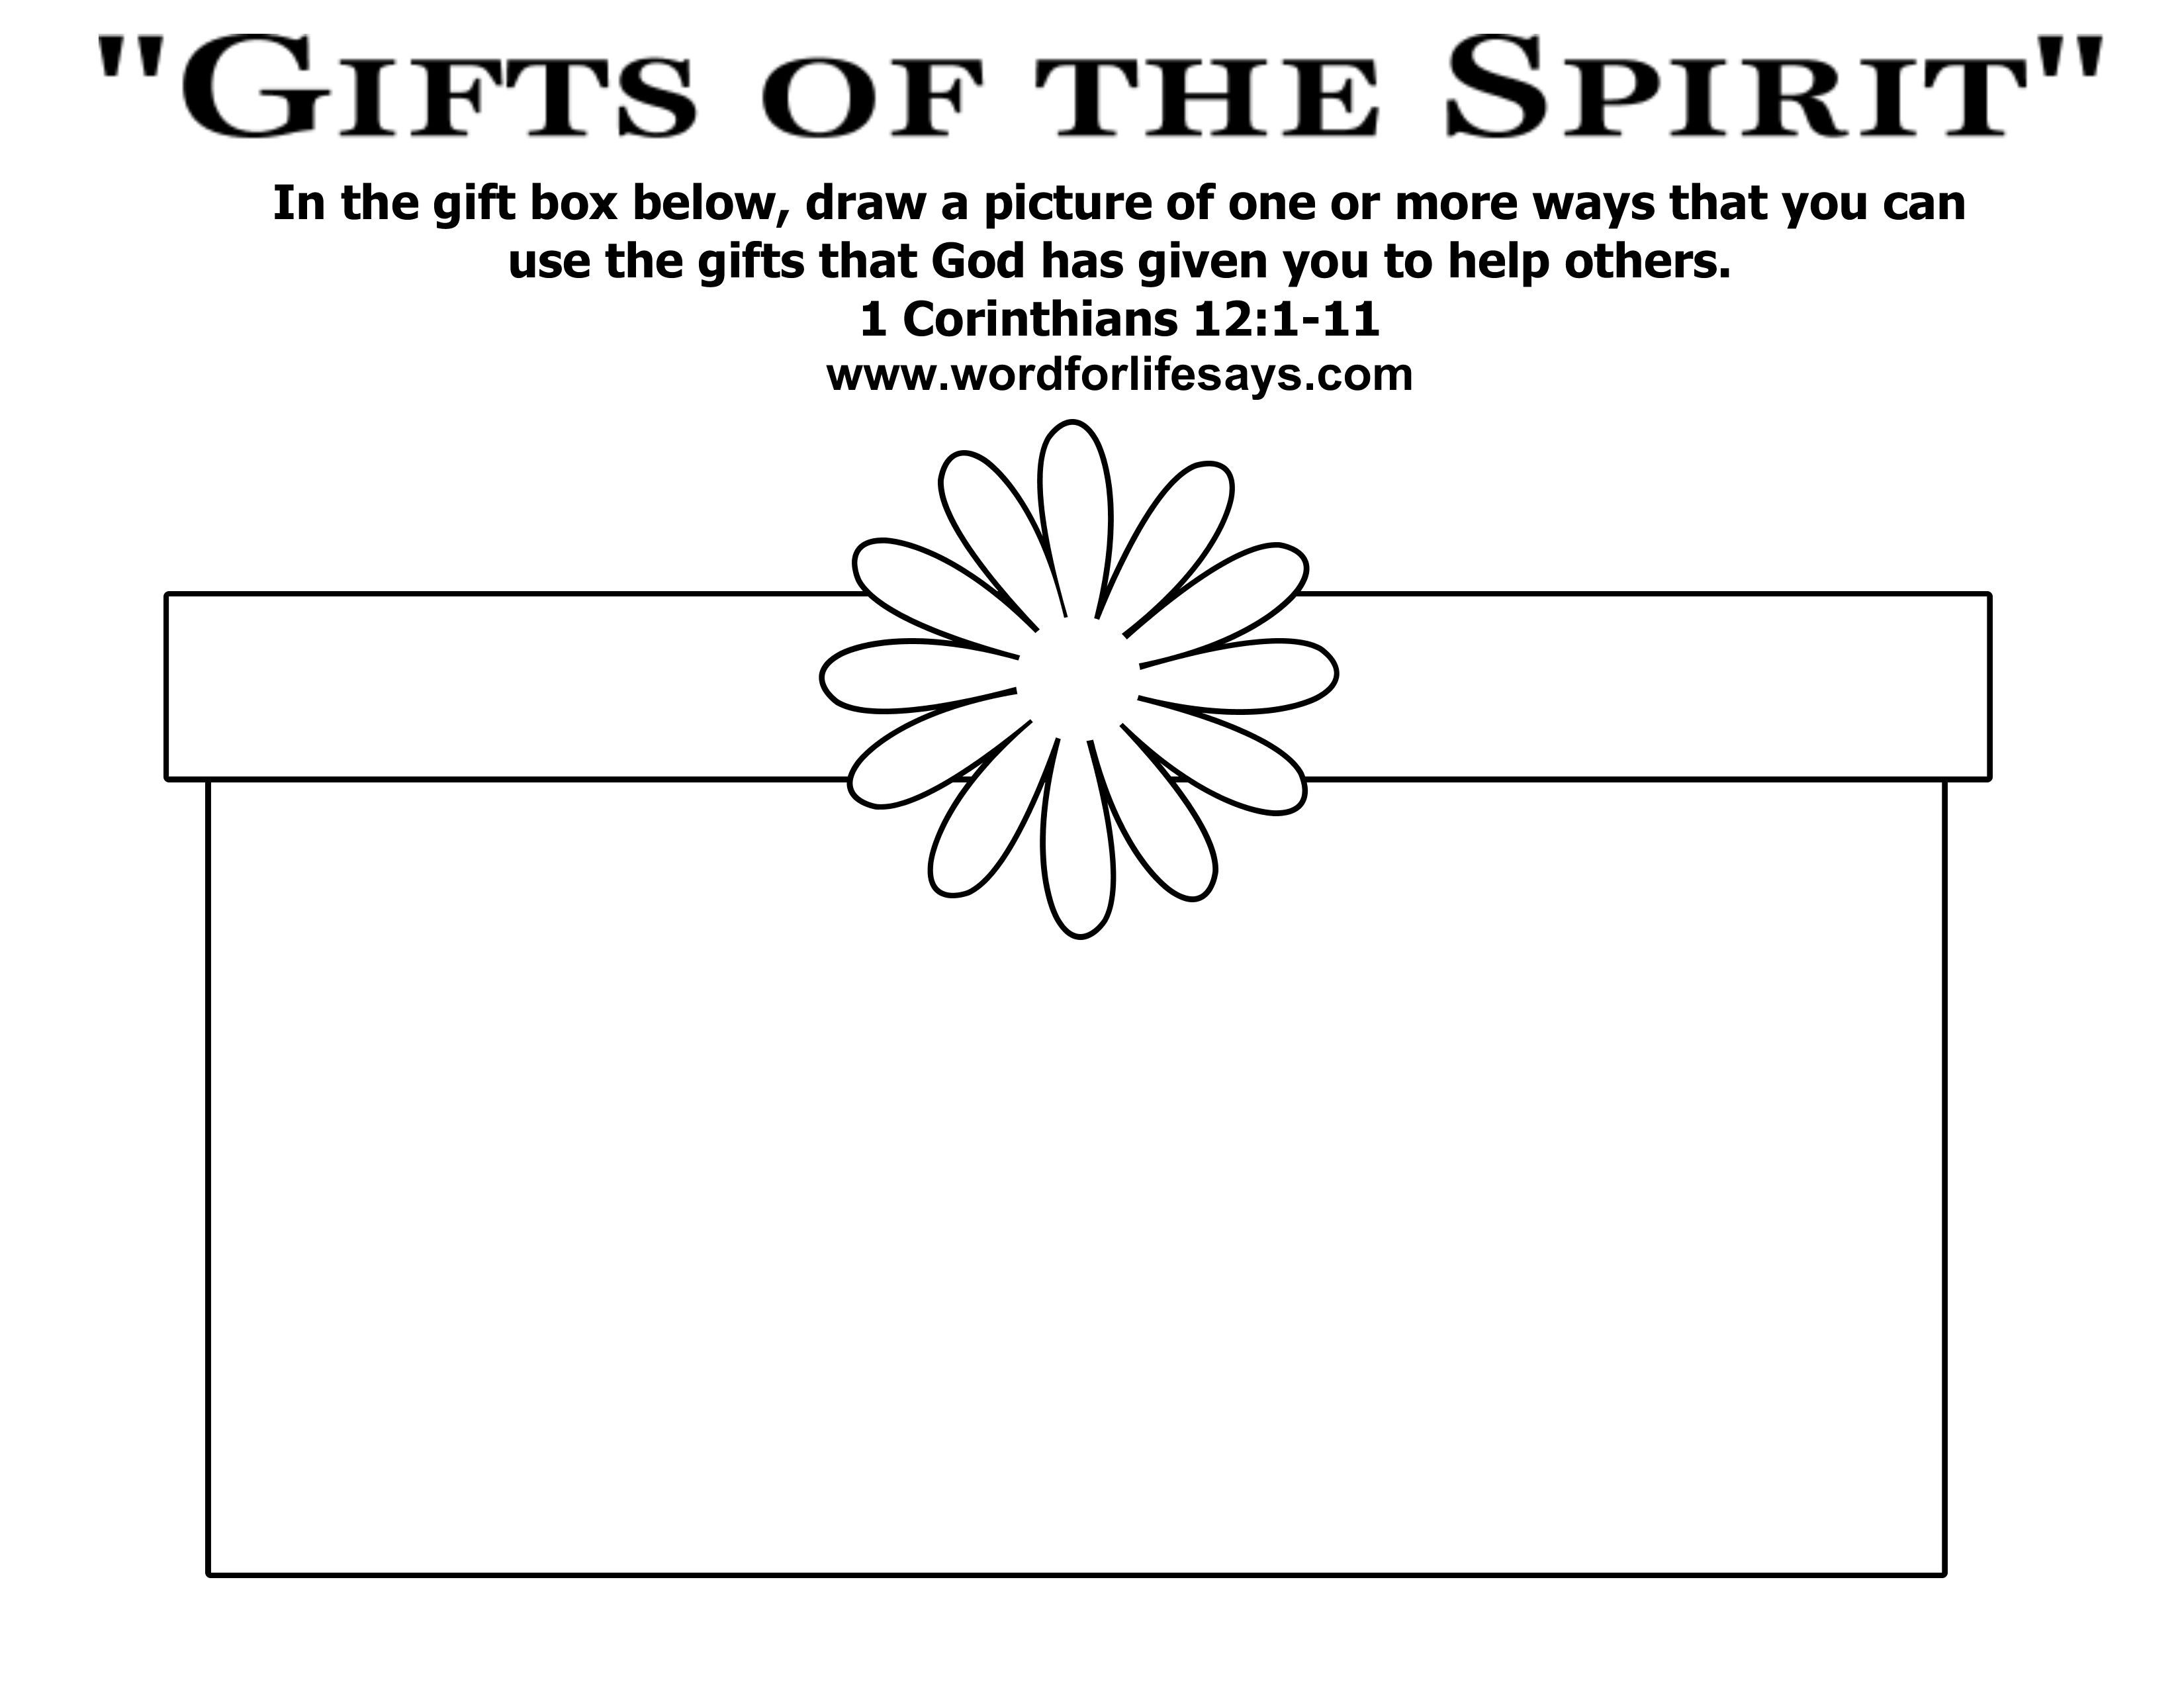 spiritual gifts coloring pages | Gifts from God coloring page - Google Search | Sunday ...